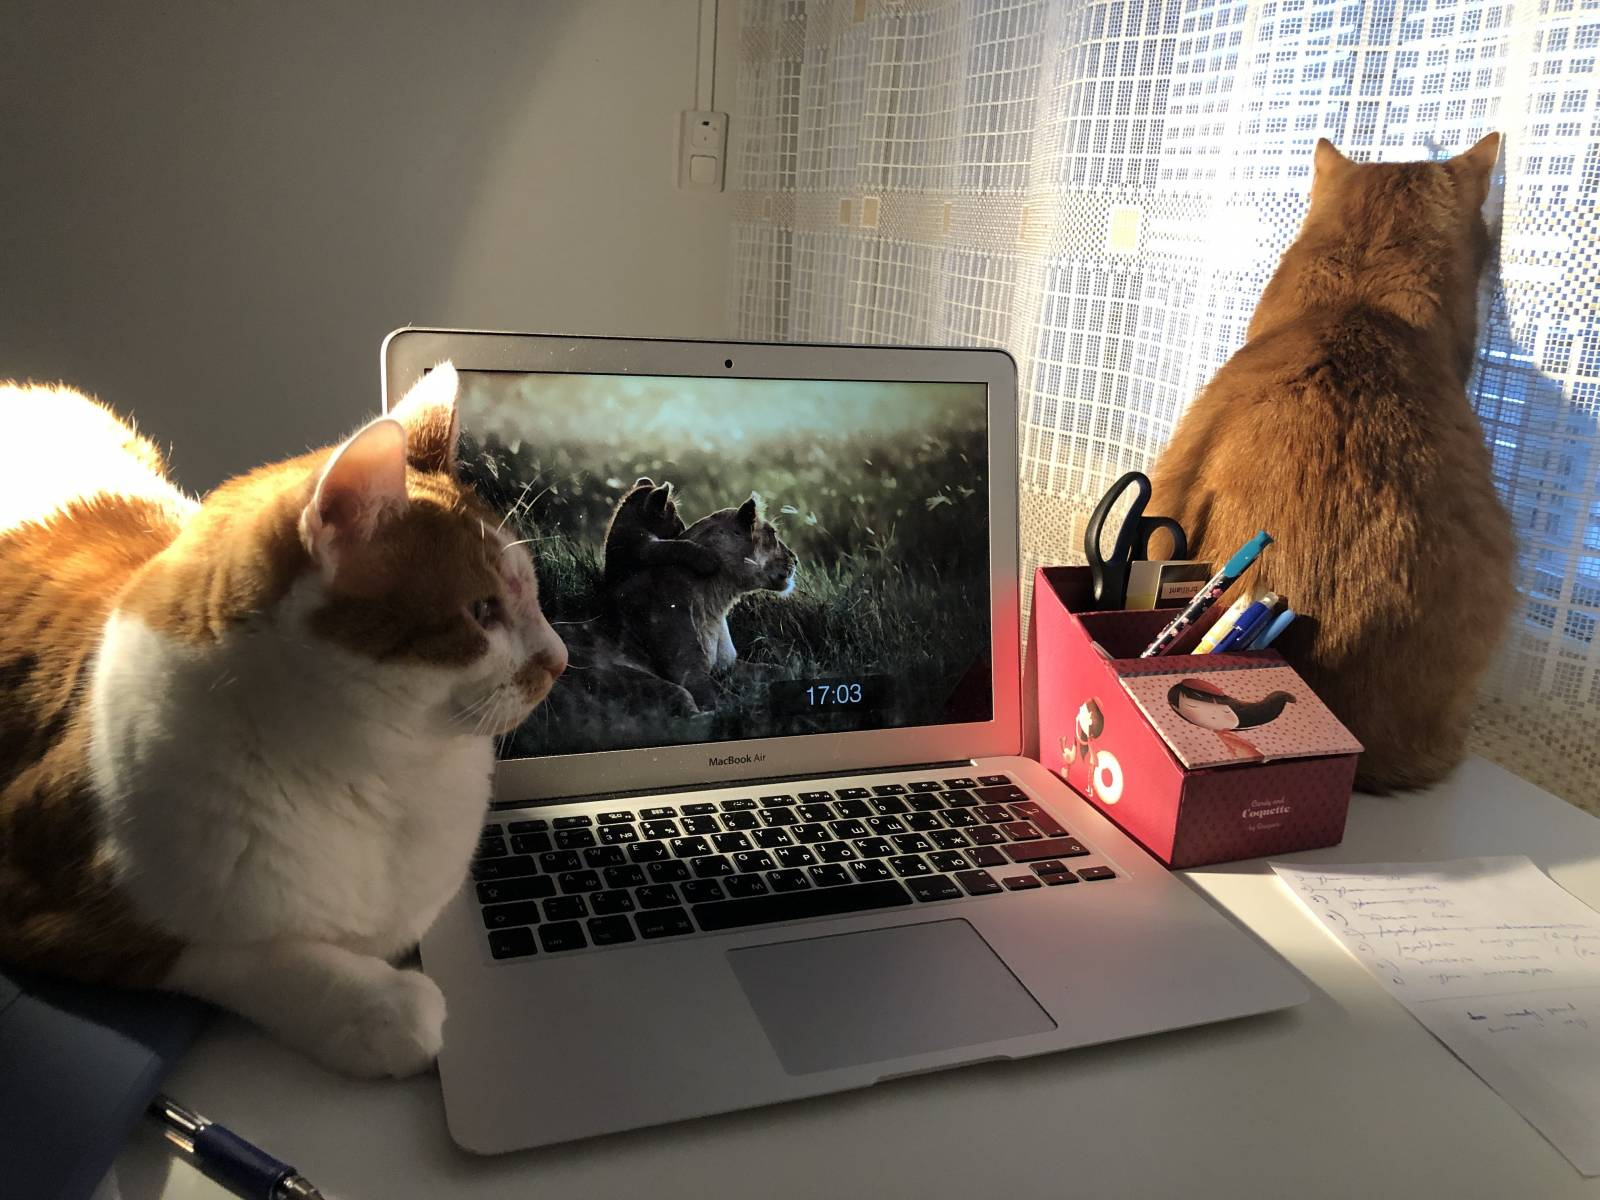 Two cats sitting next to a laptop.